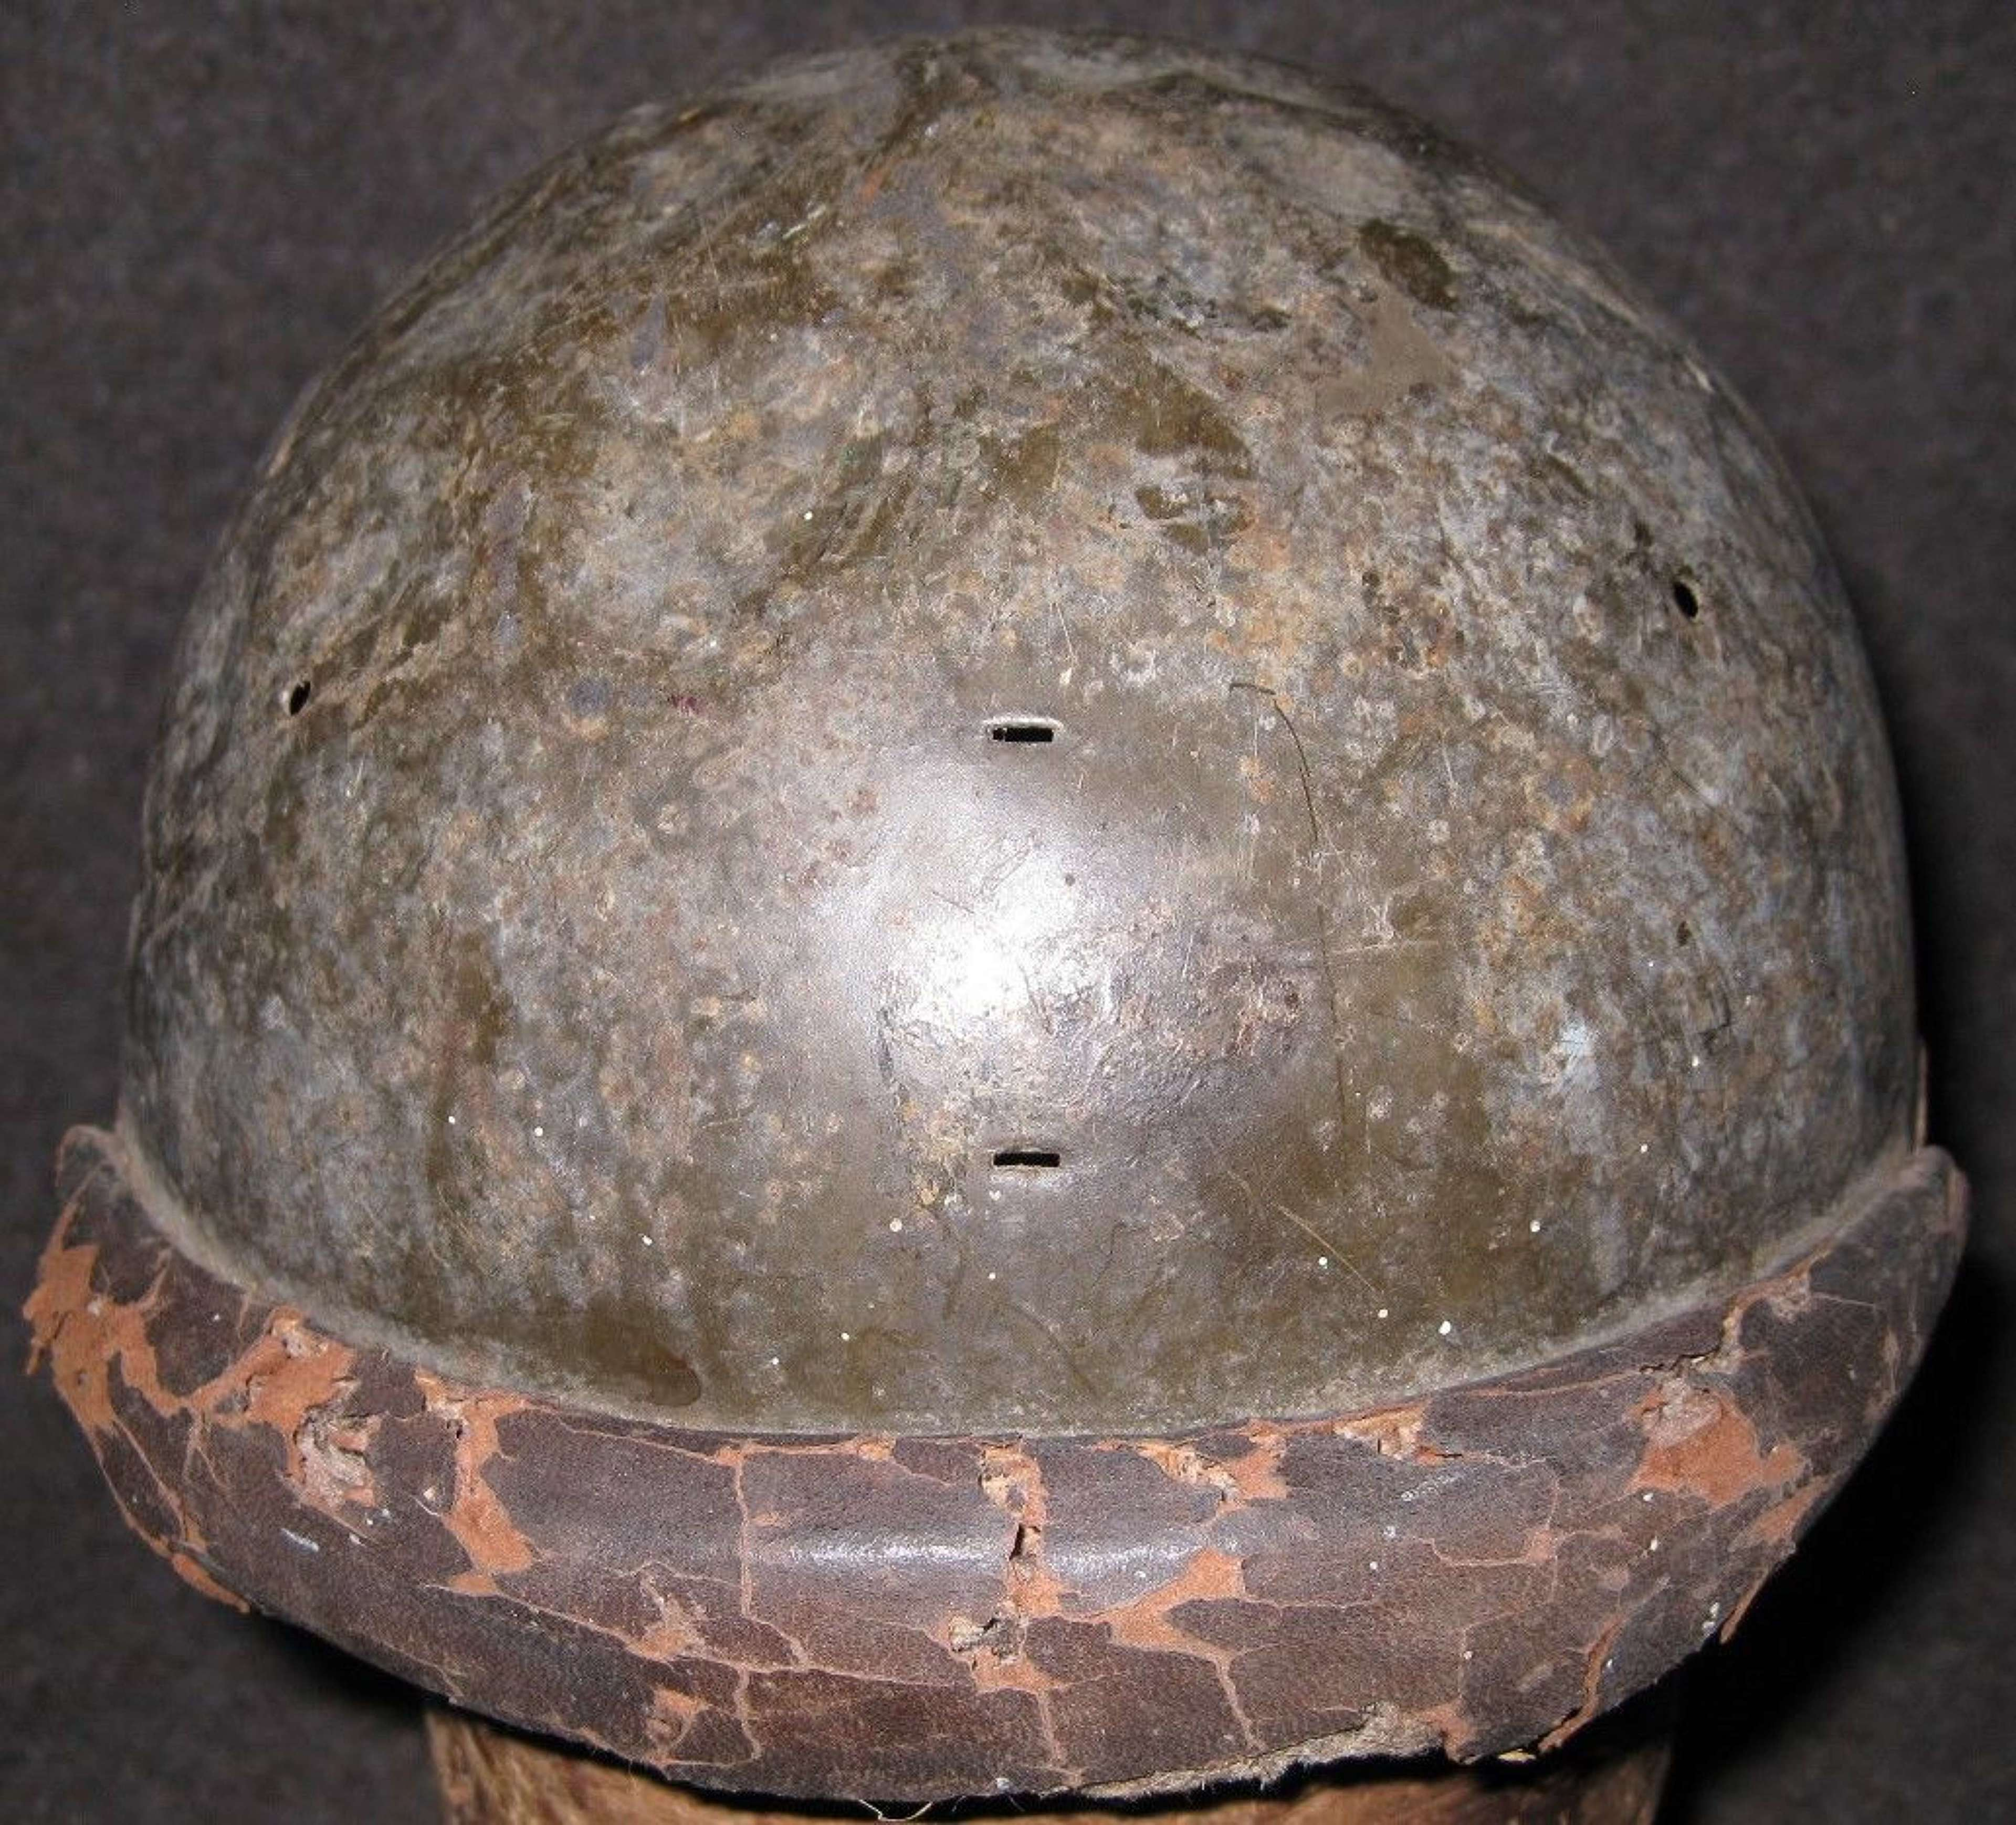 A RECENT FRENCH SHED FIND RELIC M35 FRENCH HELMET